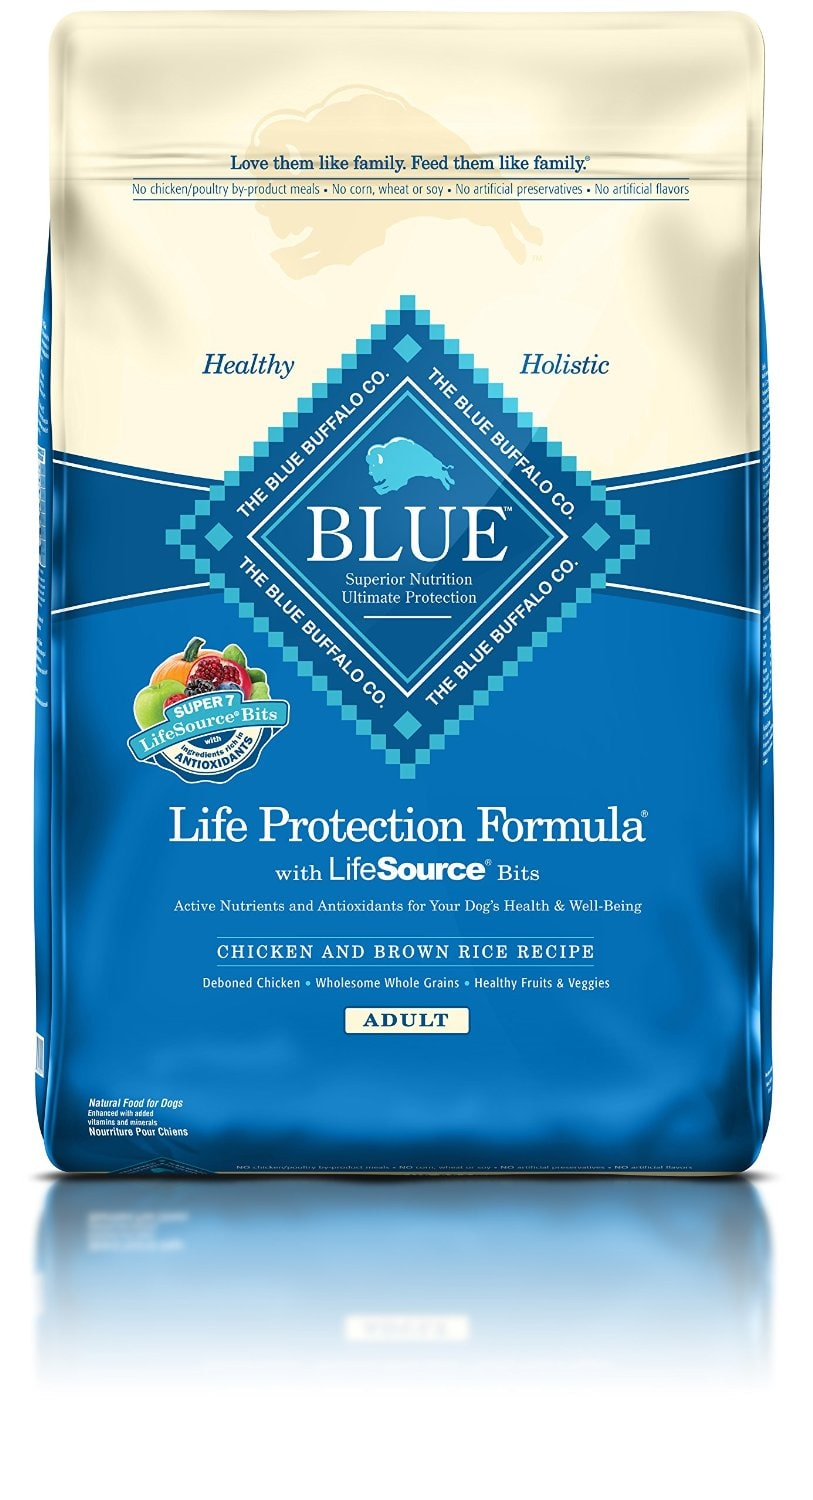 30lb Blue Buffalo Dry Adult Dog Food (Chicken & Brown Rice)  $38.50